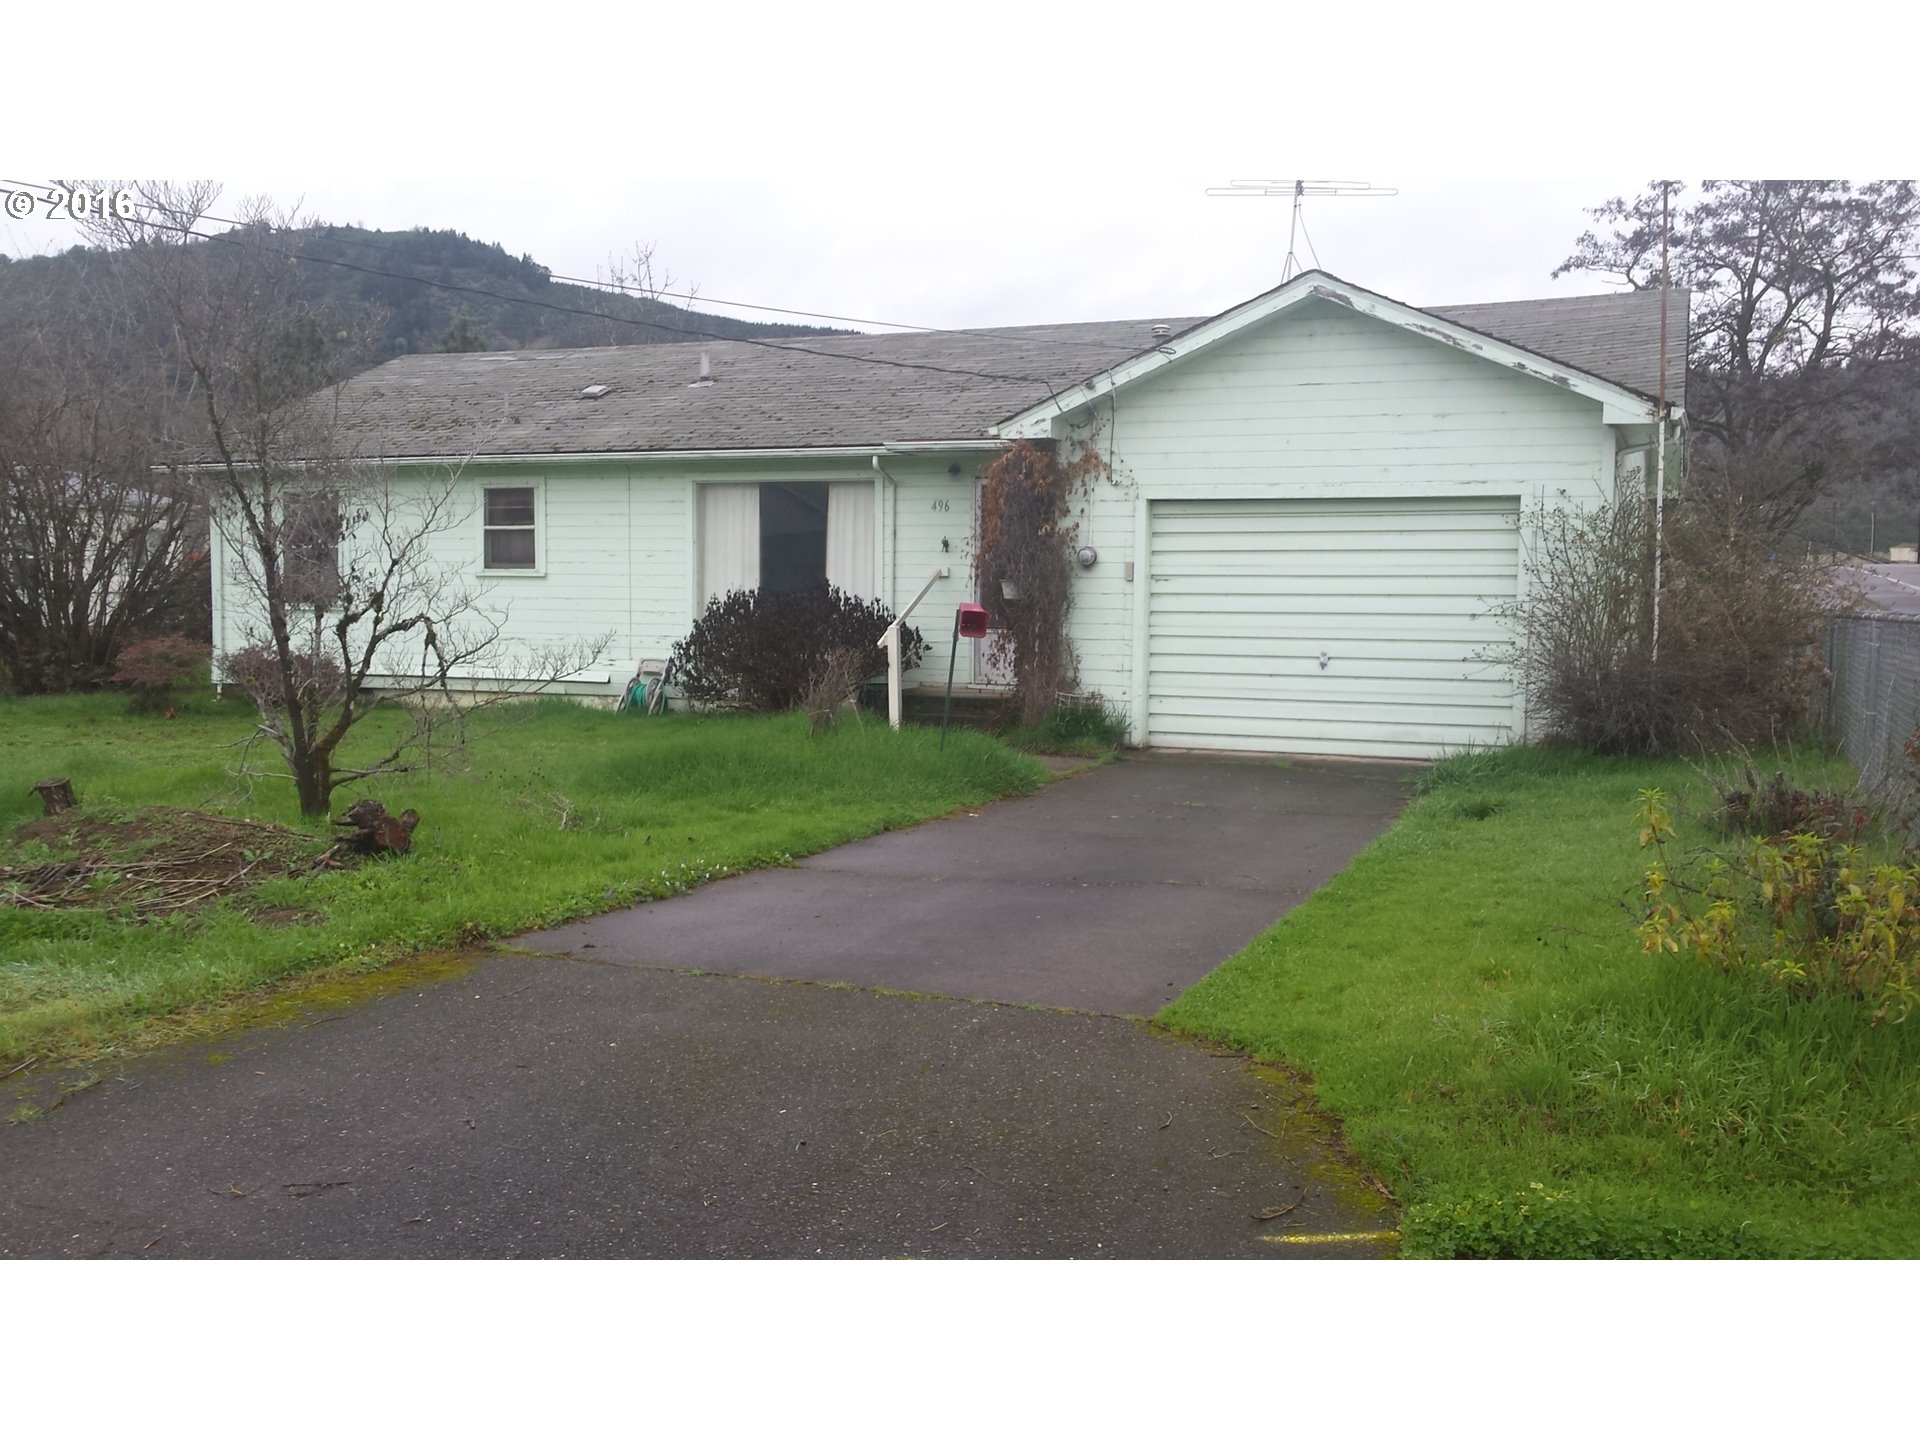 496 E Fourth Ave, Riddle, OR